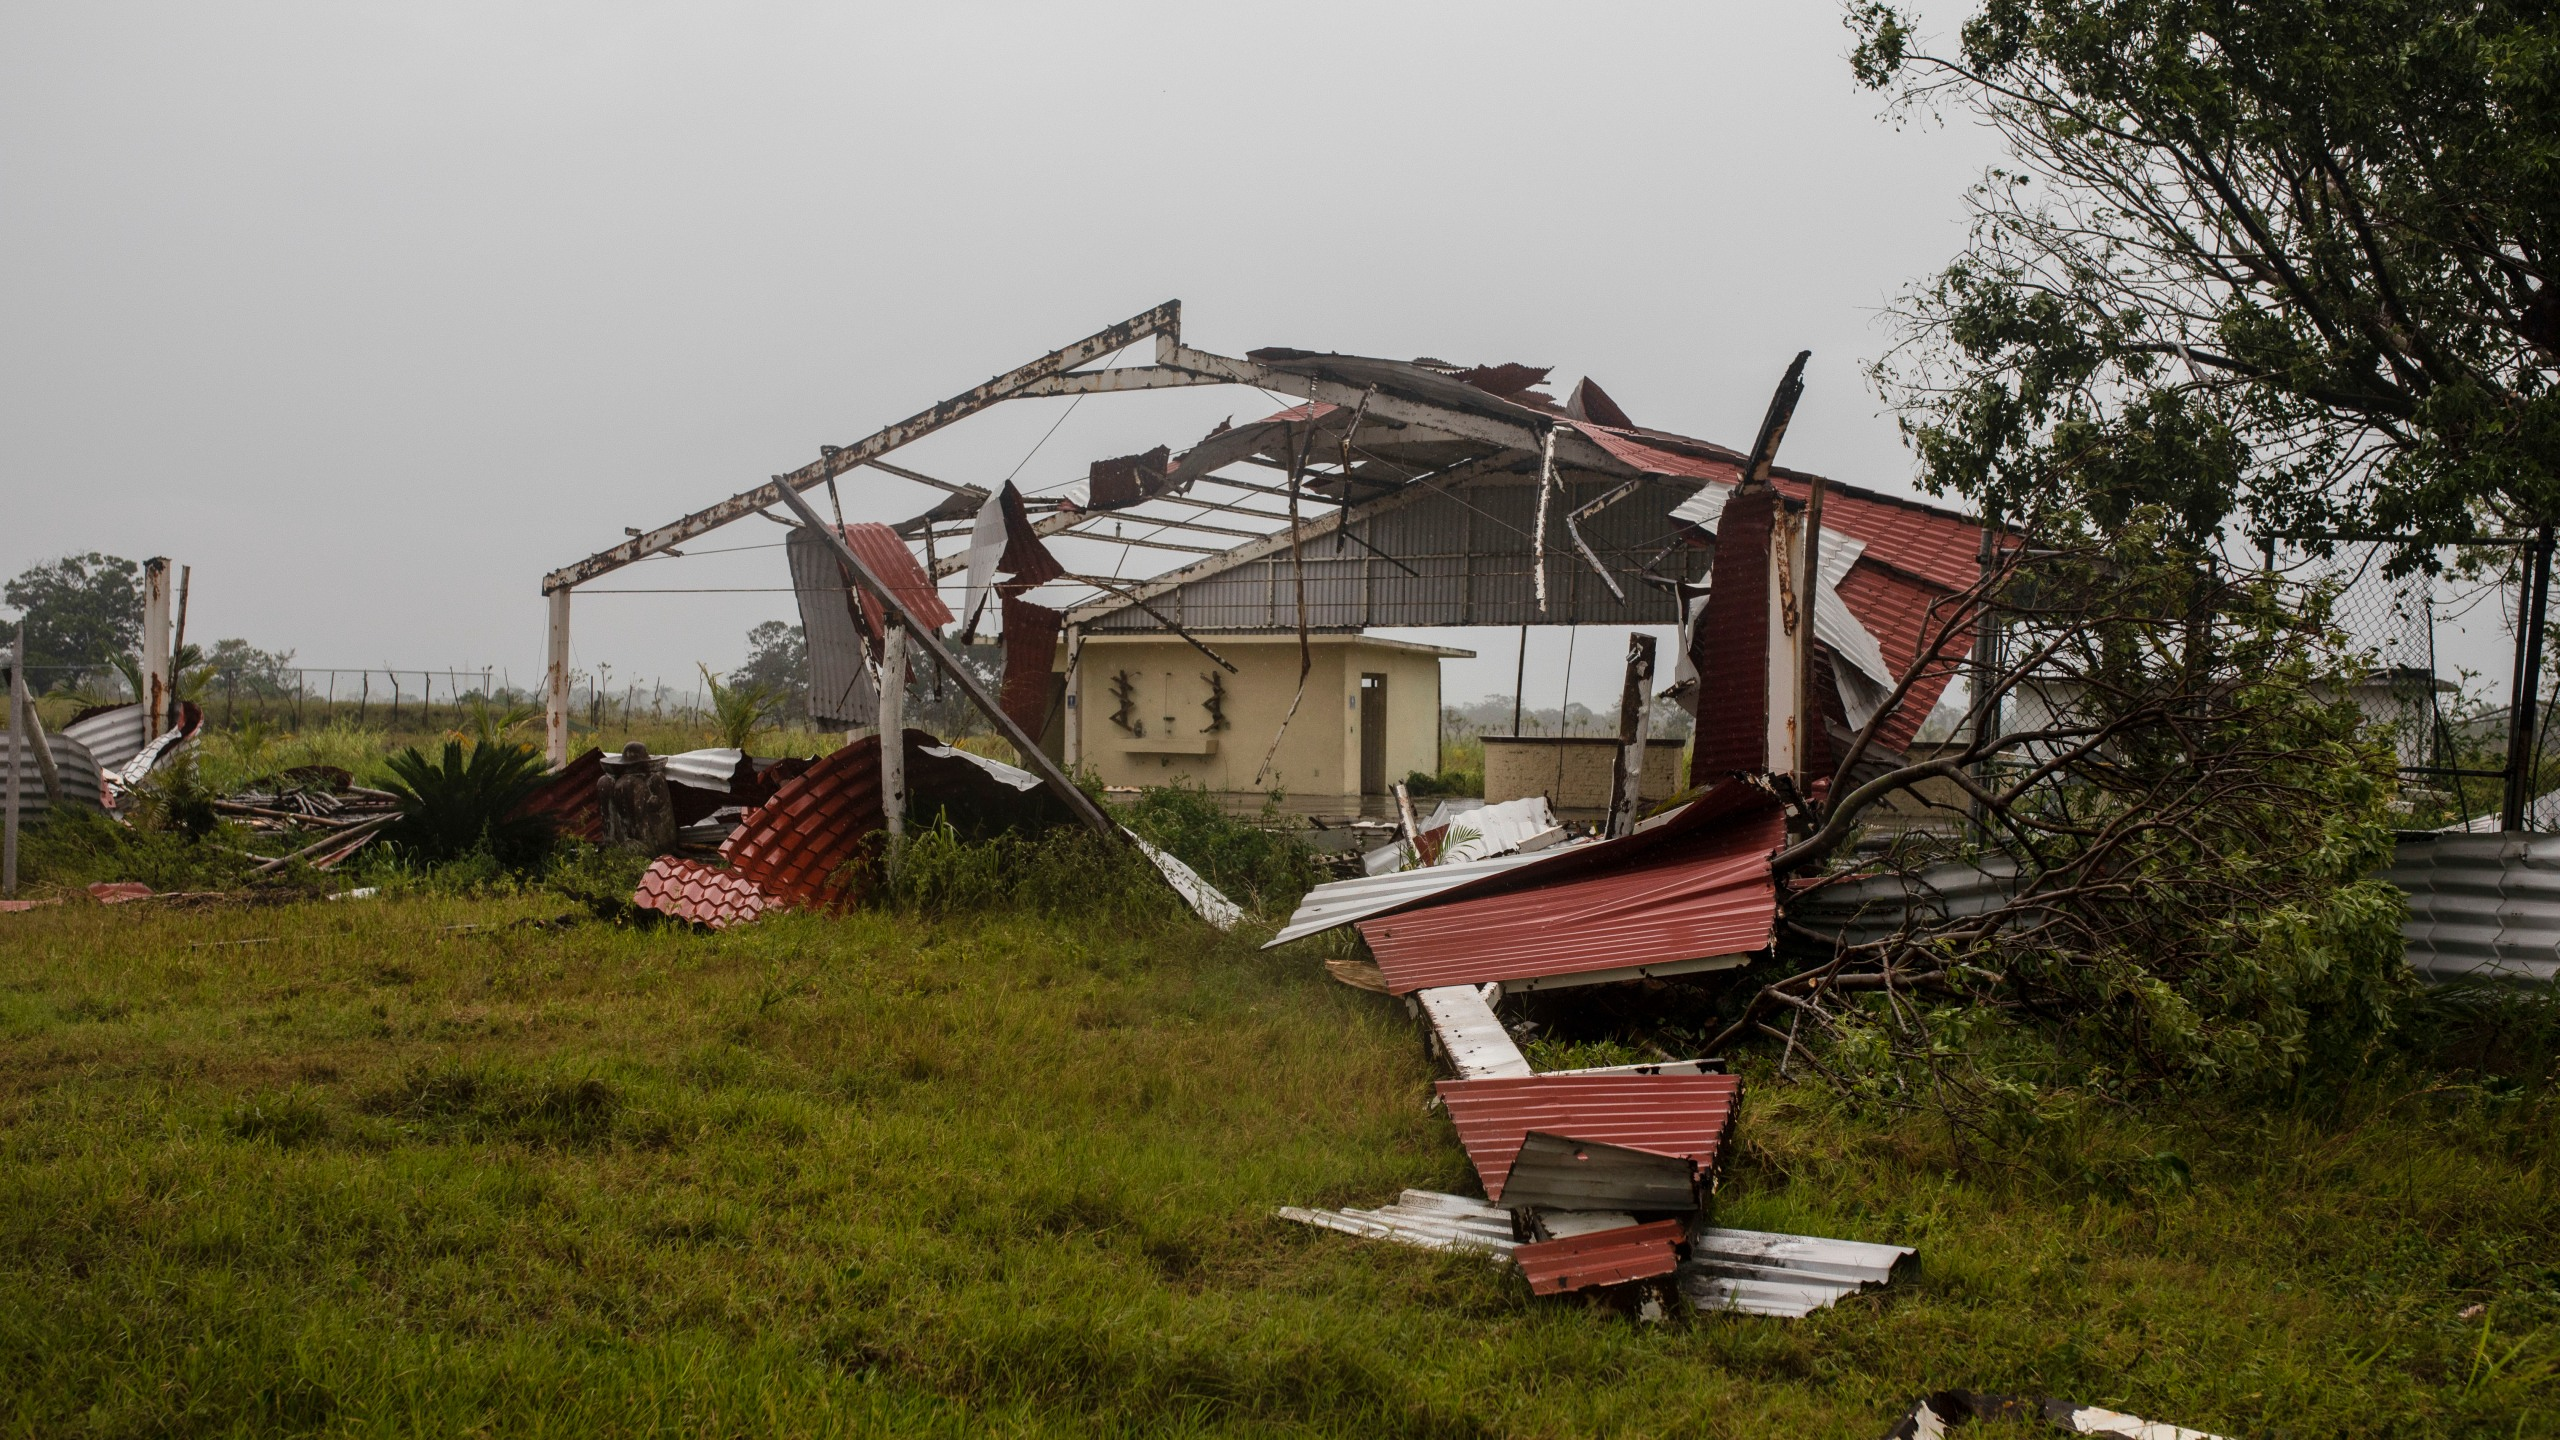 Pieces of roof lay on the ground in the aftermath of Hurricane Grace, in Tecolutla, Veracruz State, Mexico, Saturday, Aug. 21, 2021. (AP Photo/Felix Marquez)